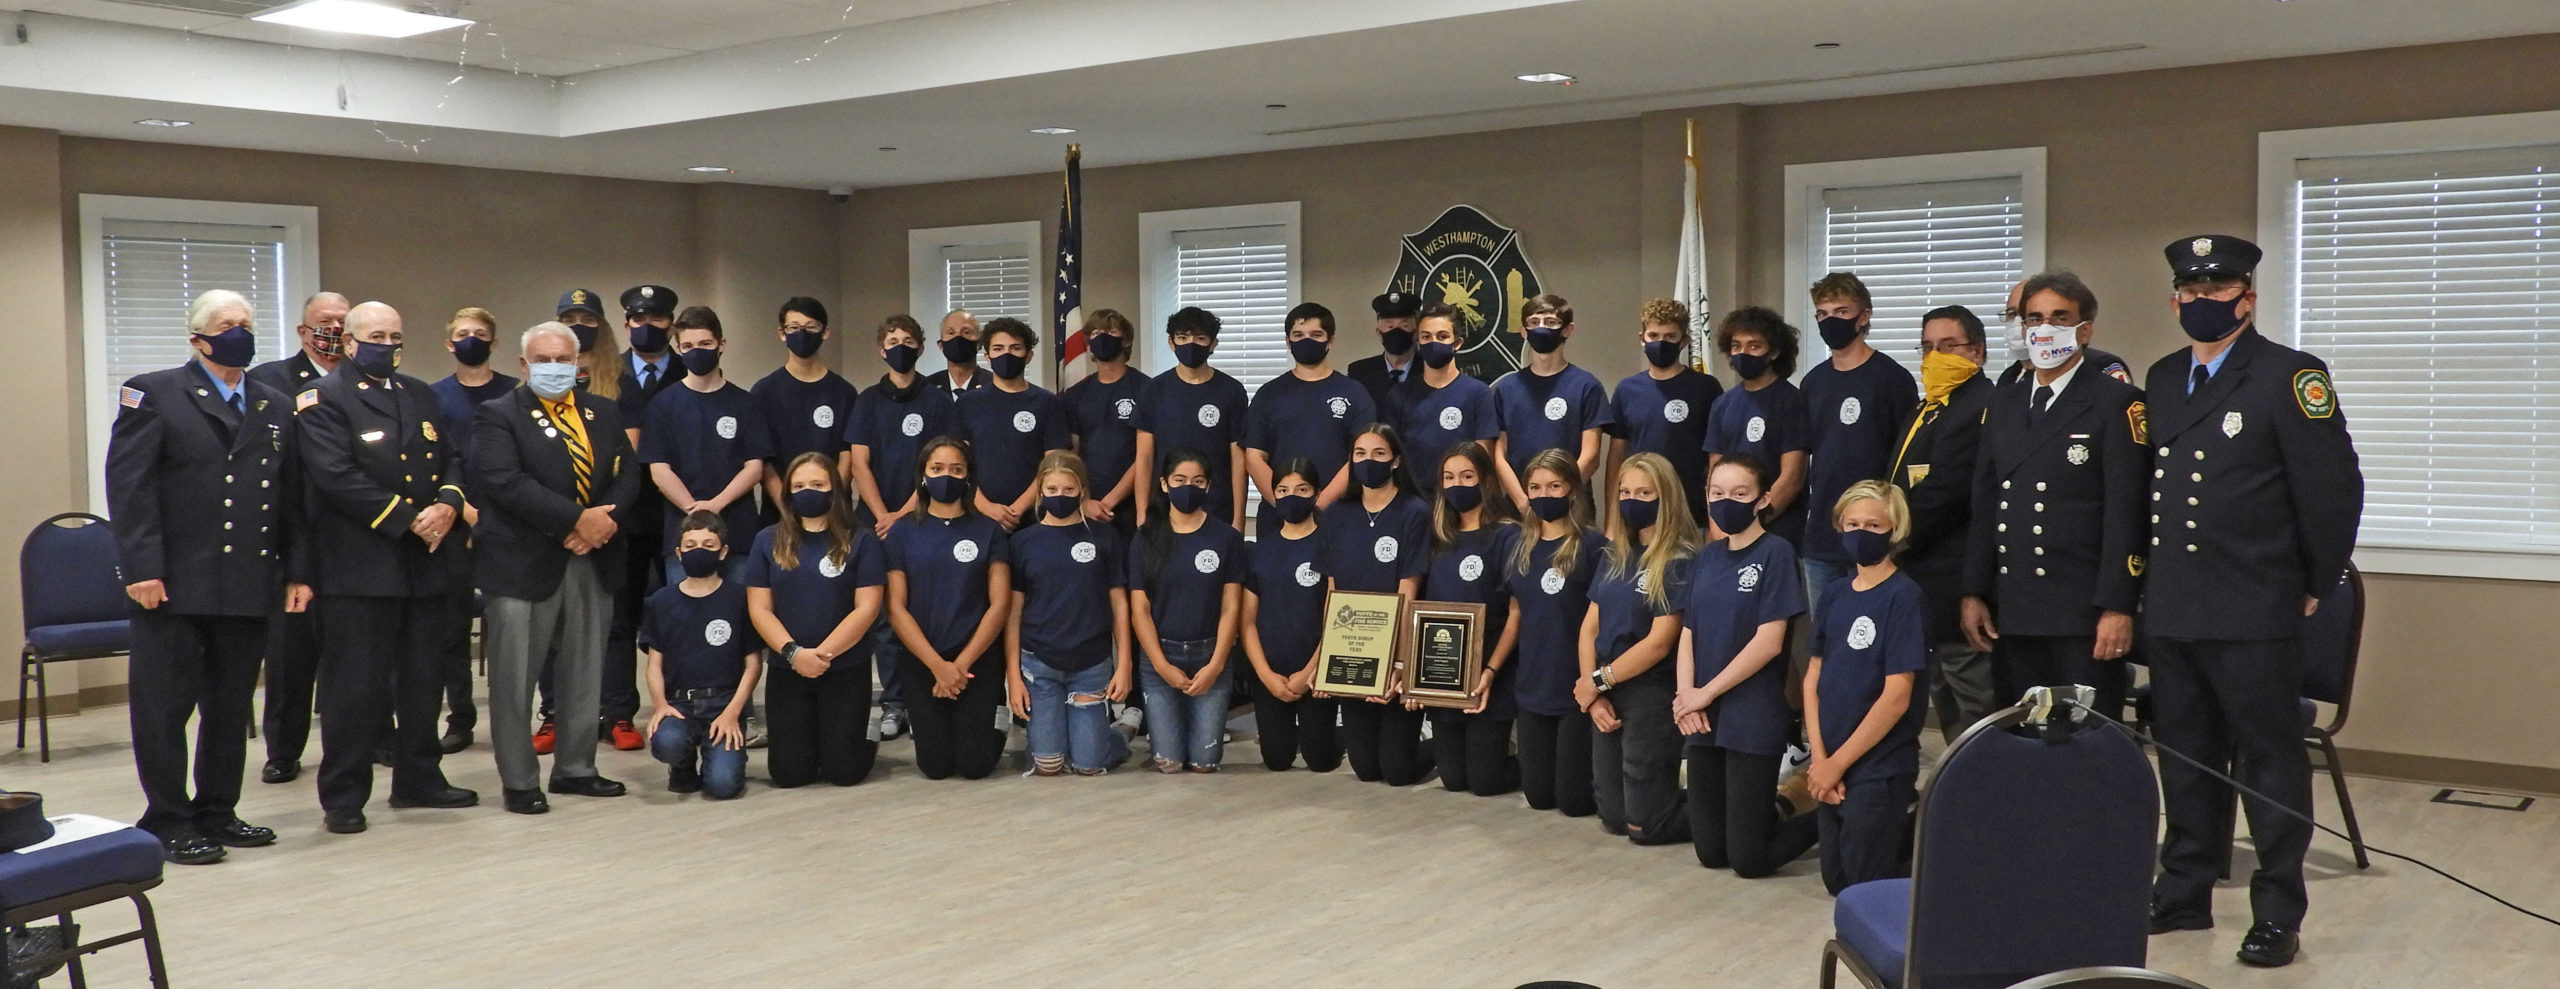 The Westhampton Beach  Fire Department Junior Program received the National Volunteer Fire Council Award for 2020, beating out all other programs in the entire country. COURTESY CODY HOYLE